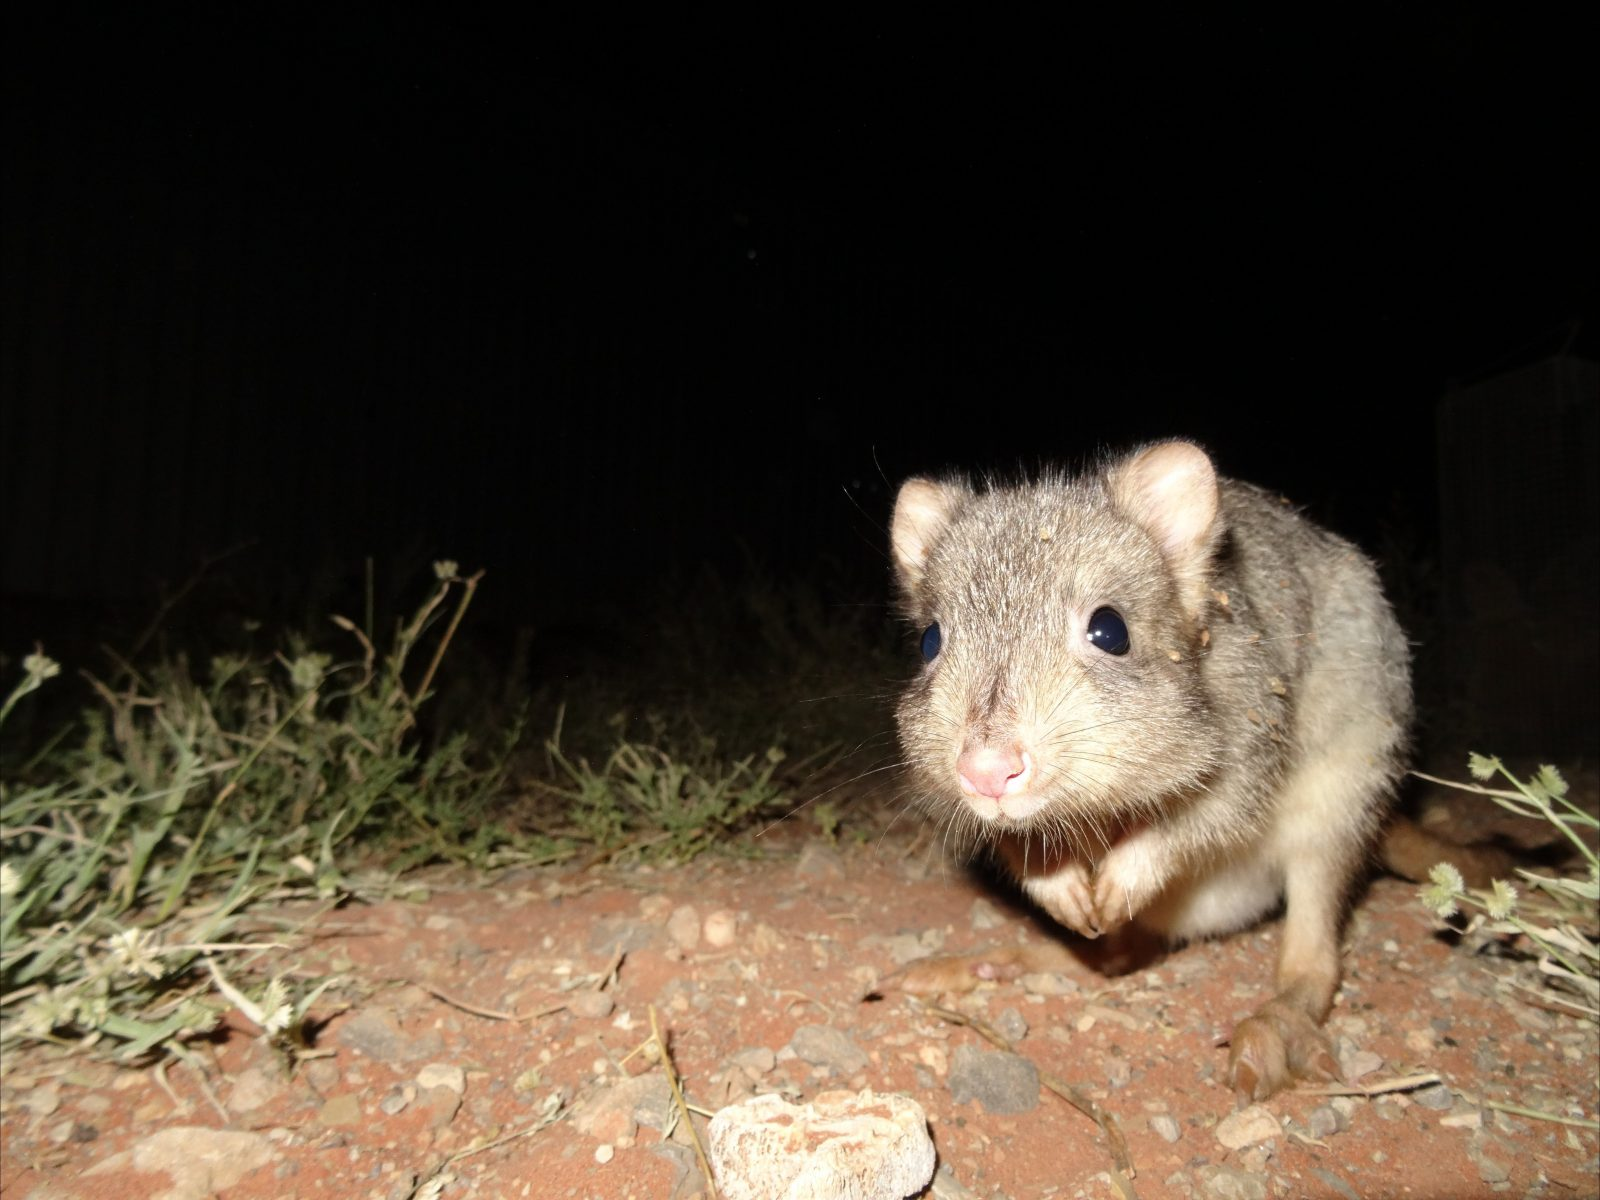 A burrowing bettong at the Arid Recovery Reserve